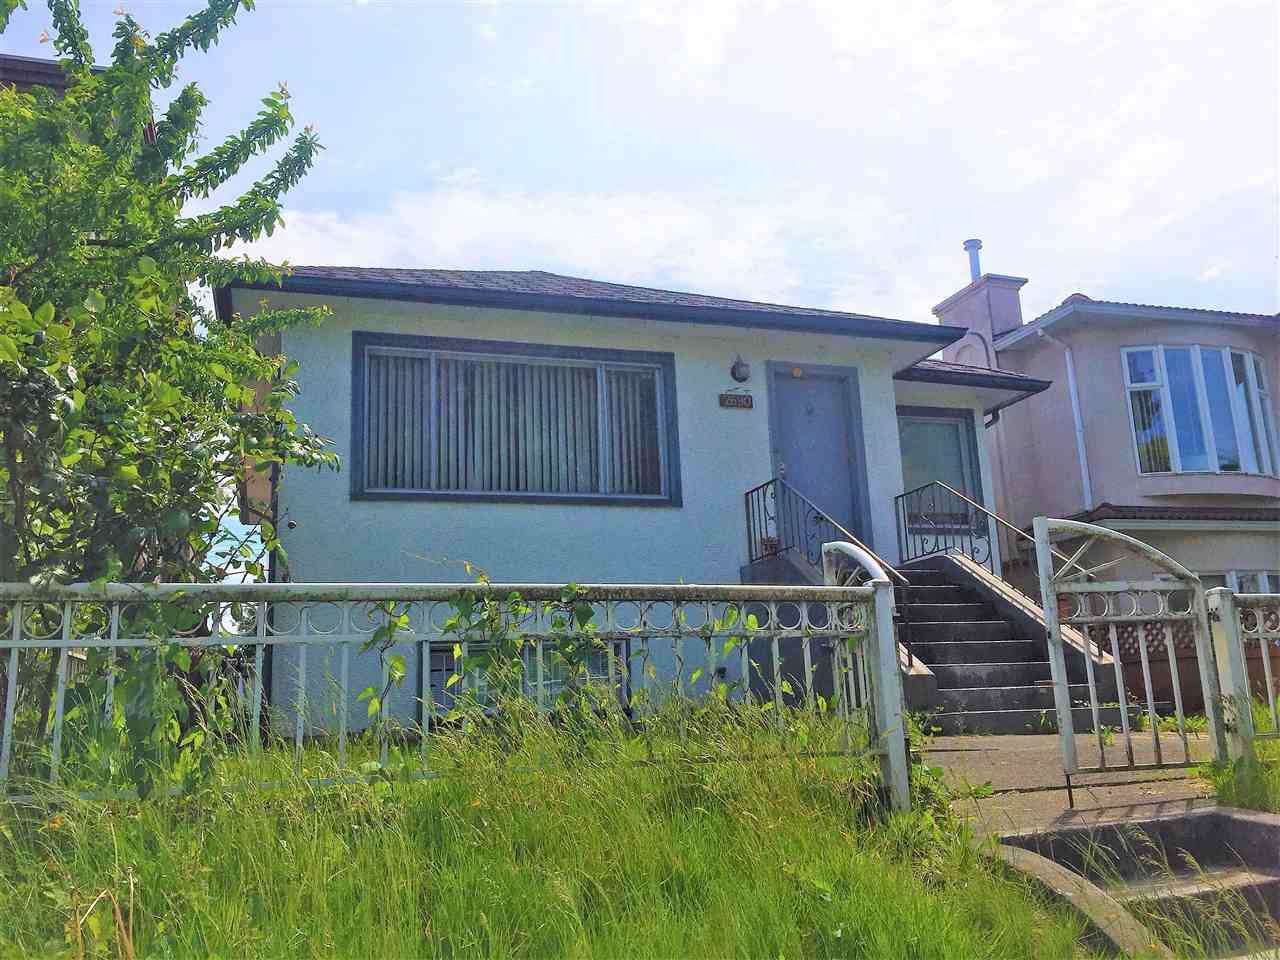 Main Photo: 2690 E 1ST Avenue in Vancouver: Renfrew VE House for sale (Vancouver East)  : MLS®# R2372338